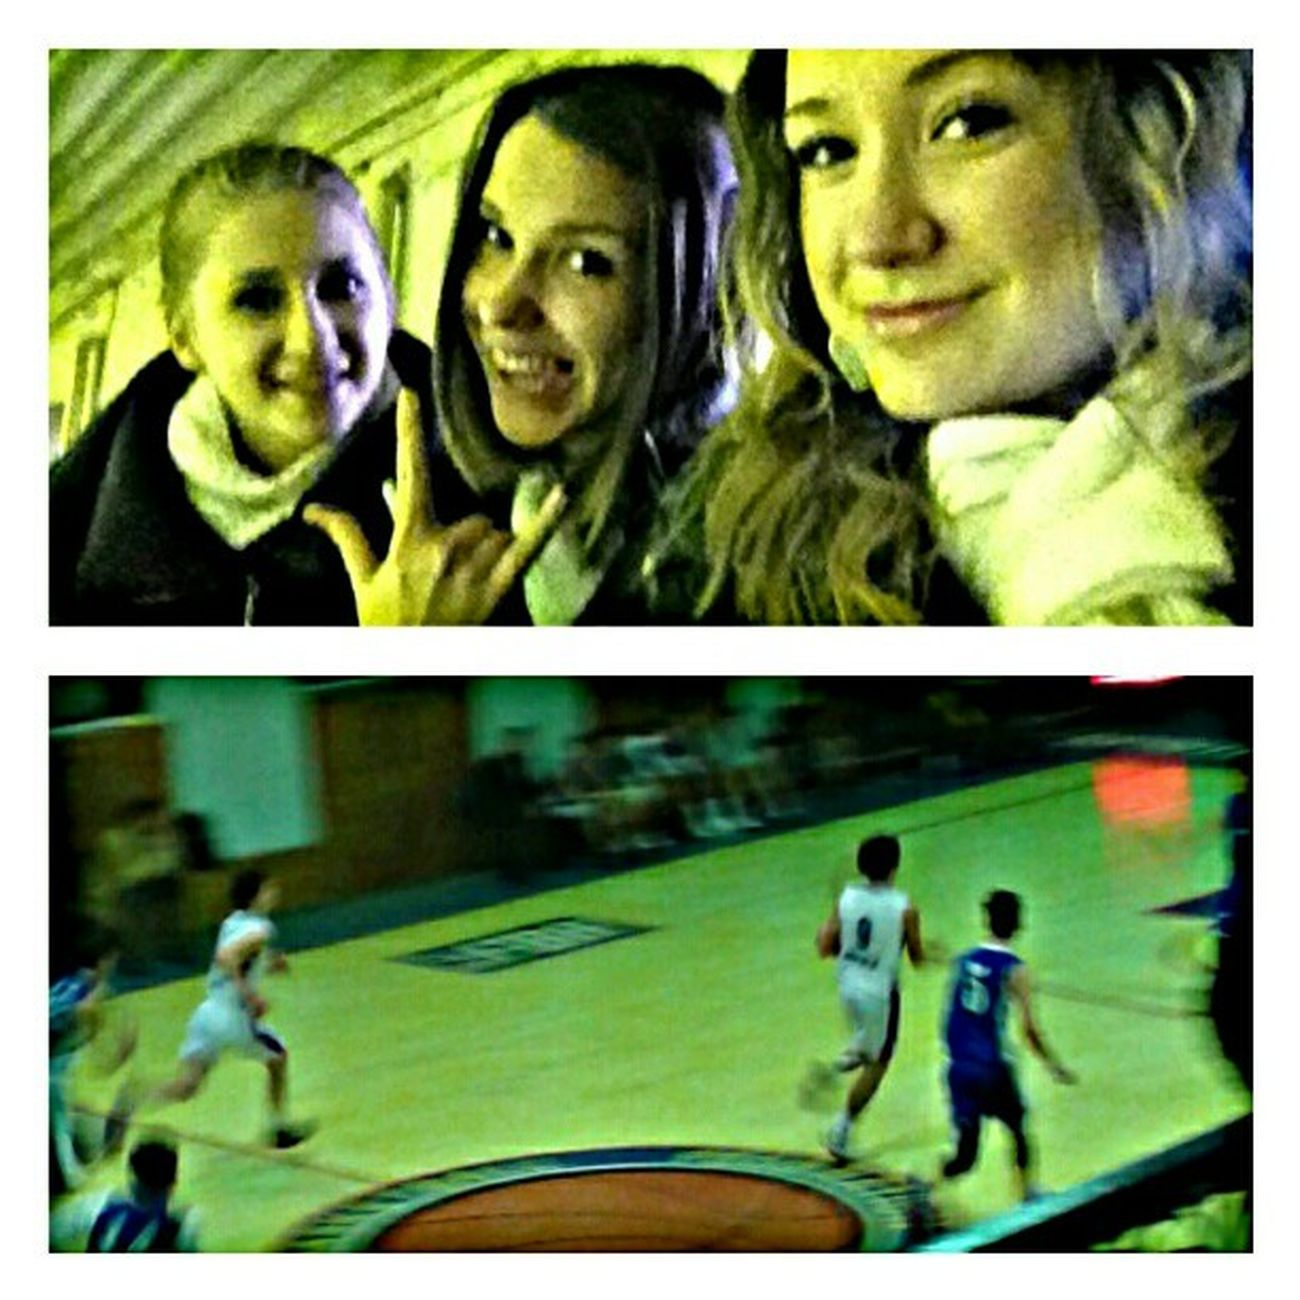 Болеем за Артура)) @janegorlova @tipaeva_r Me Friends Basketball Mxsk goodstagram instamood captain instapeople